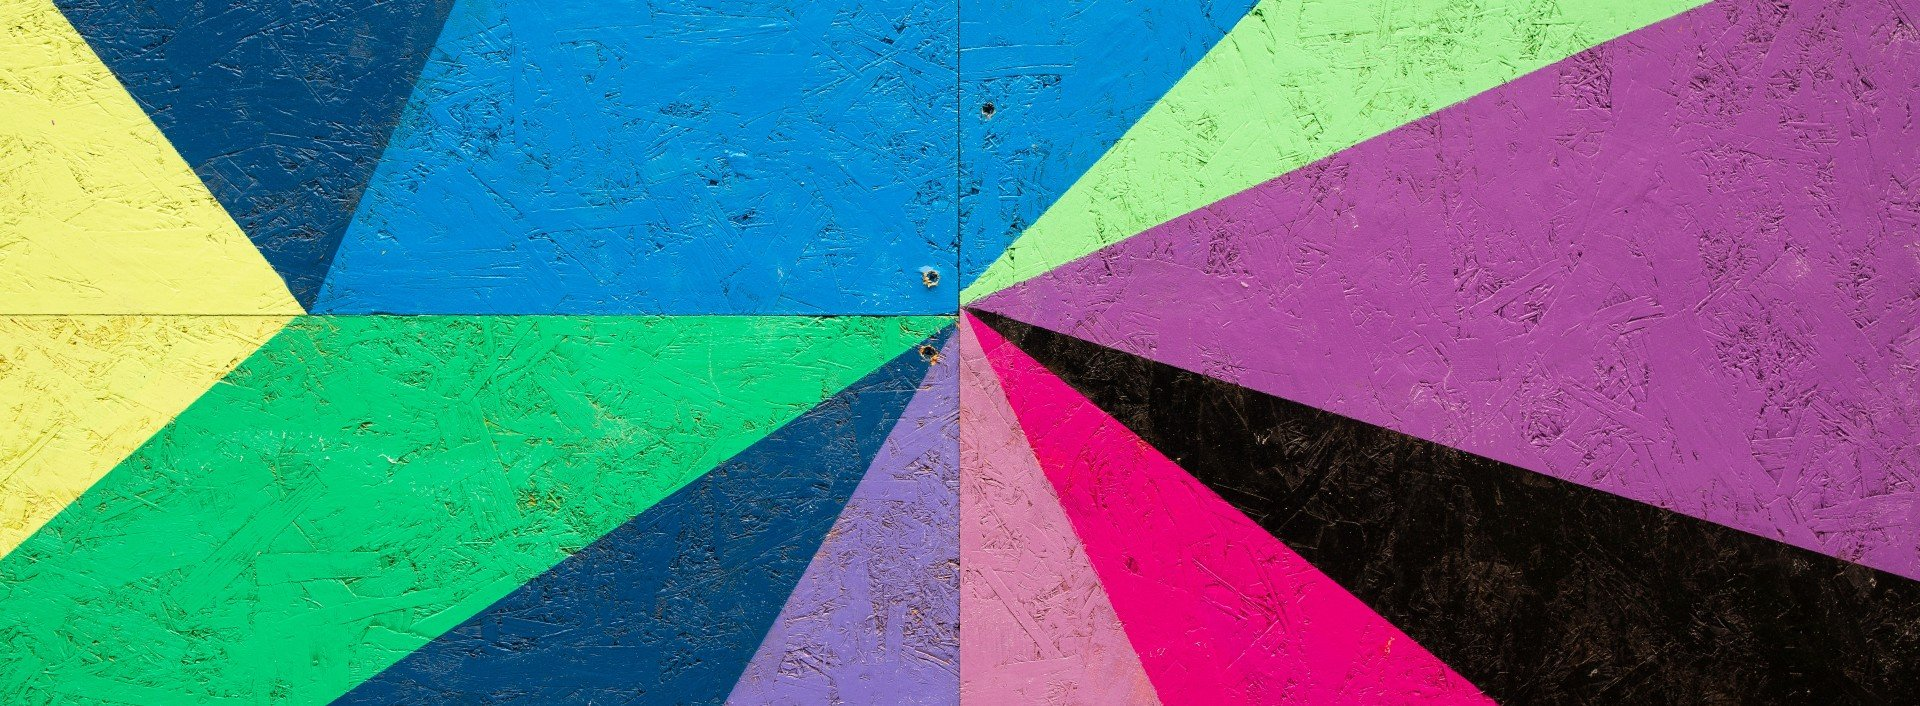 Shapes in English: many different colored shapes make up a painting on a wall.